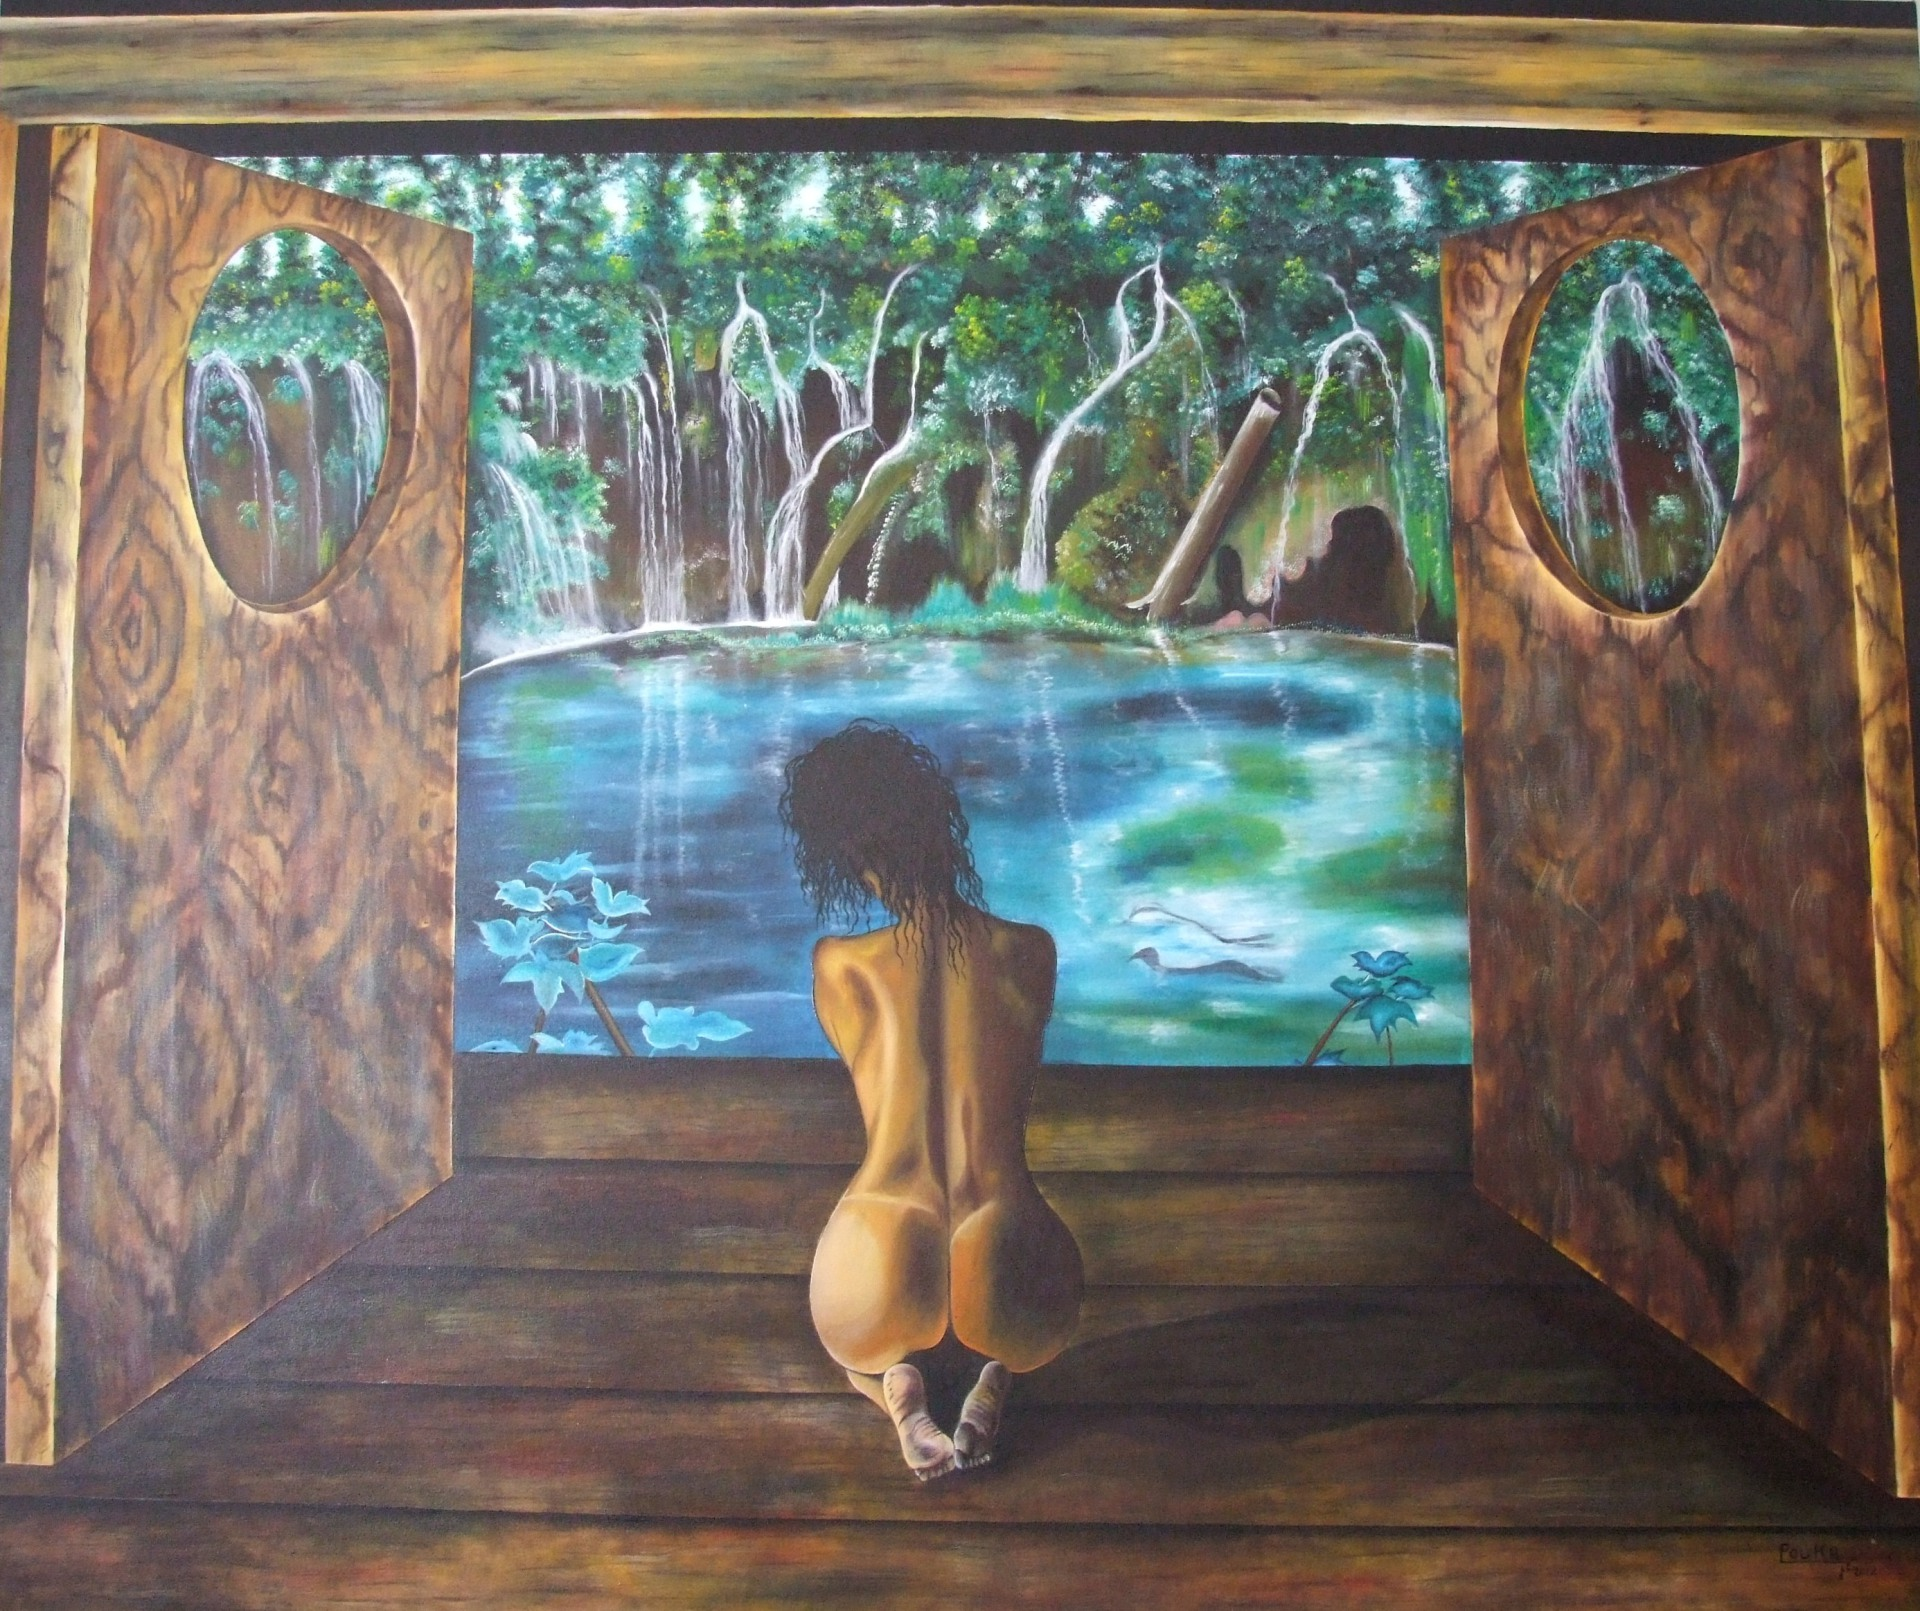 View 170 x 140 cm - oil on canvas